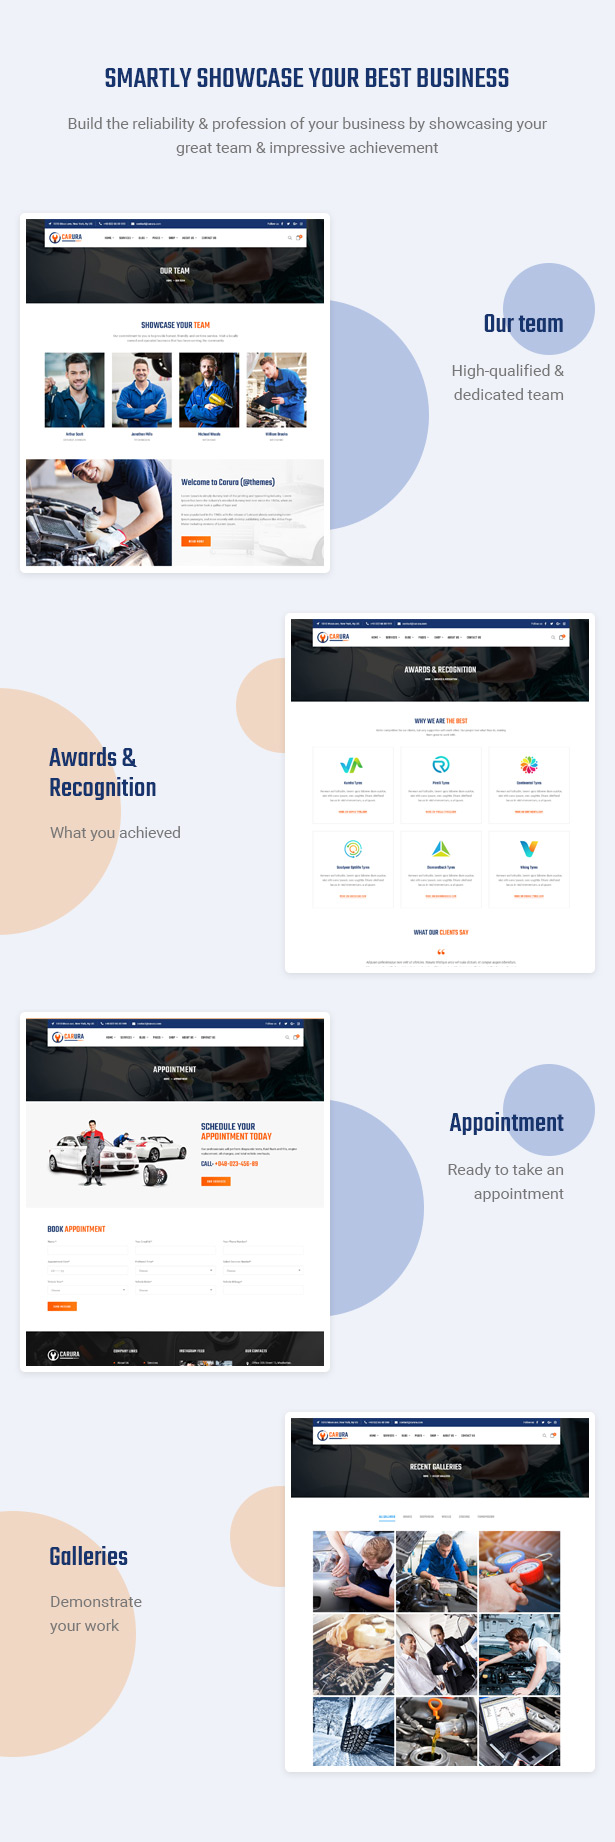 Build Up Business Reputation Effectively - Carsao - Car Service & Auto Mechanic WordPress Theme